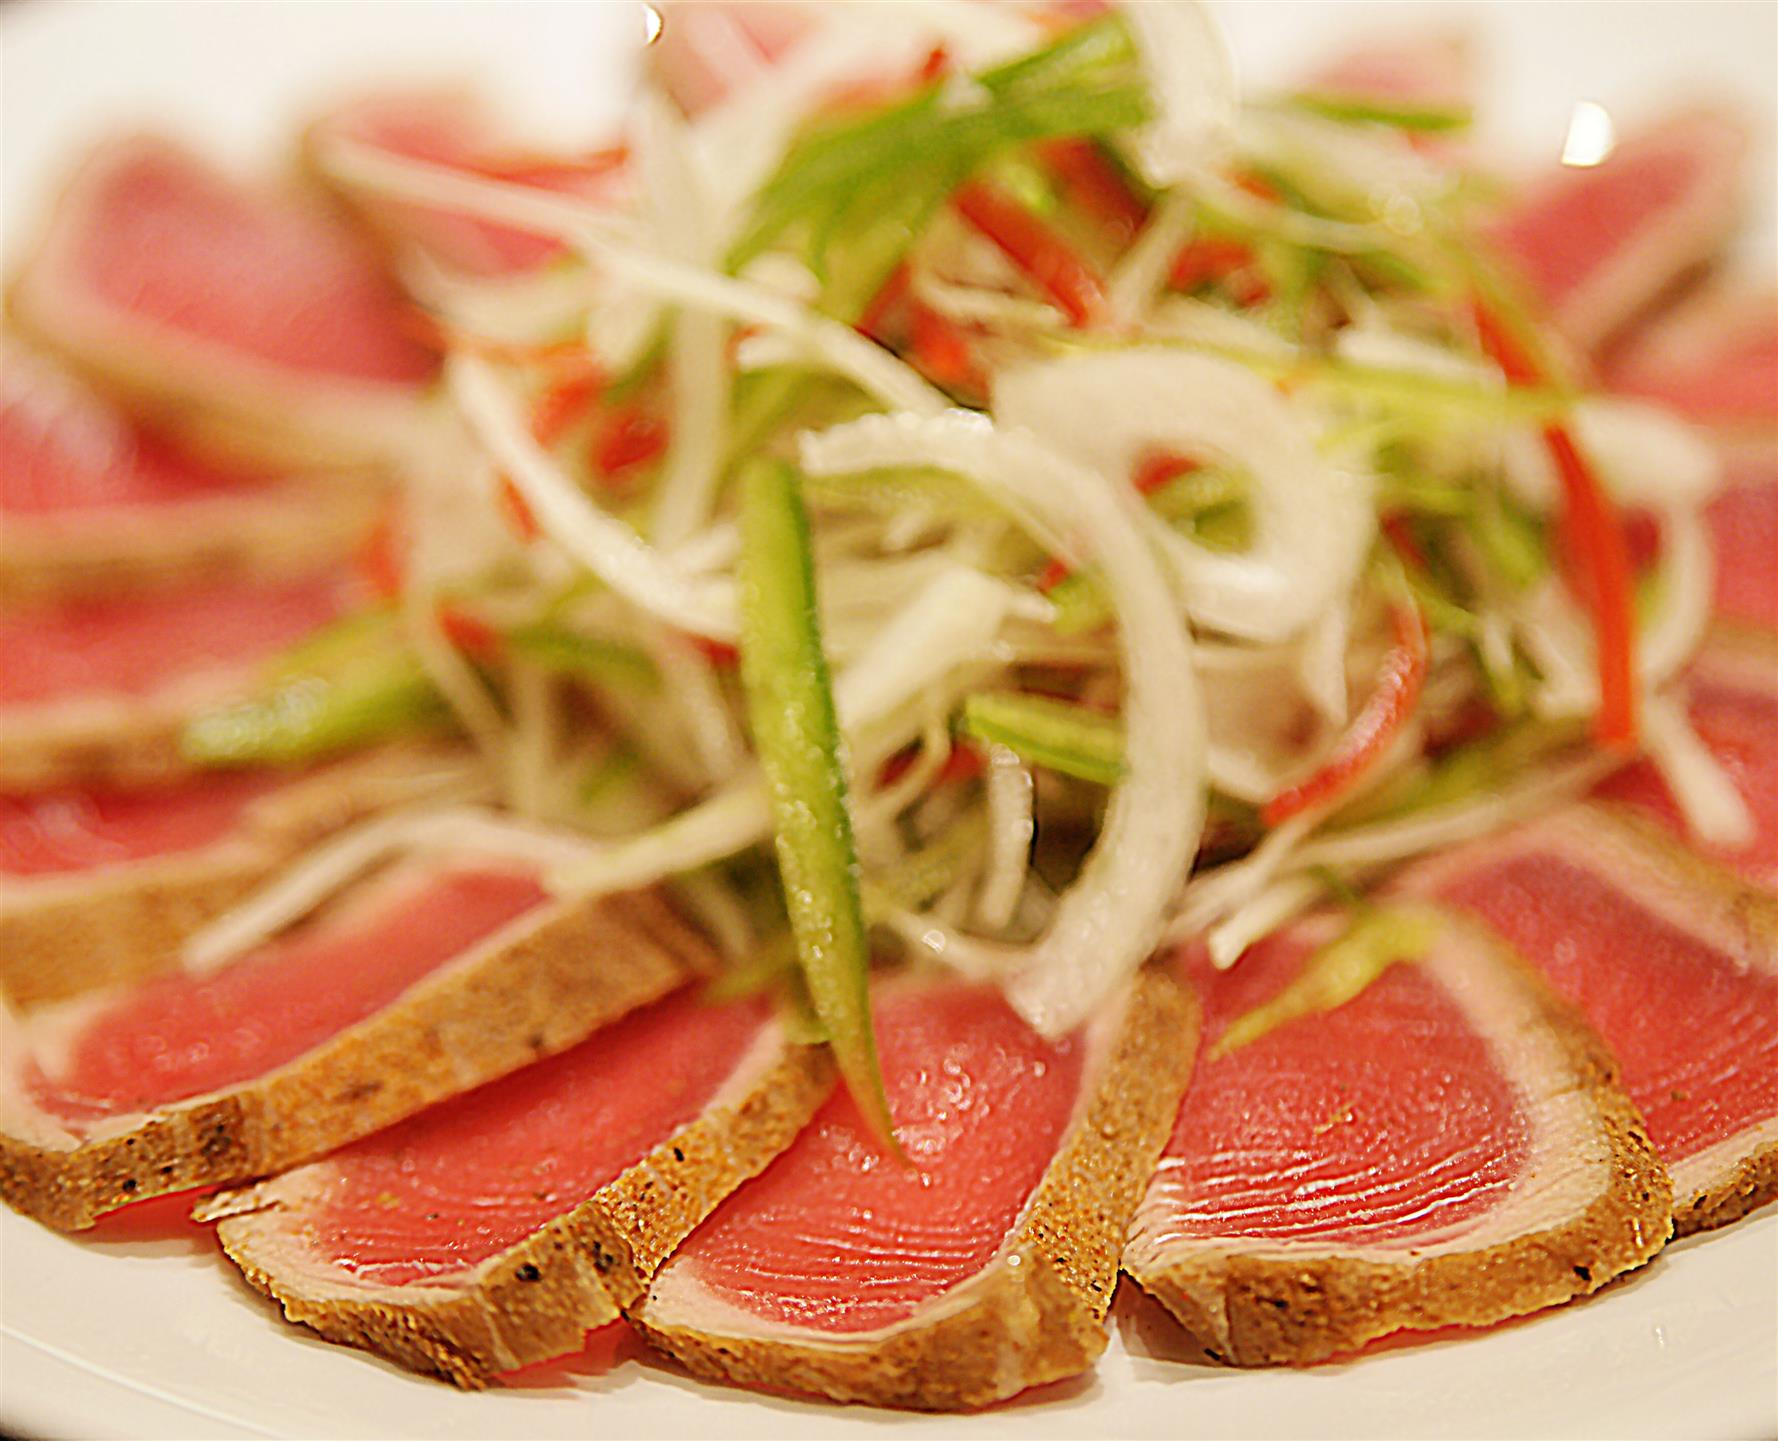 ahi tuna on a circular platter with vegetables